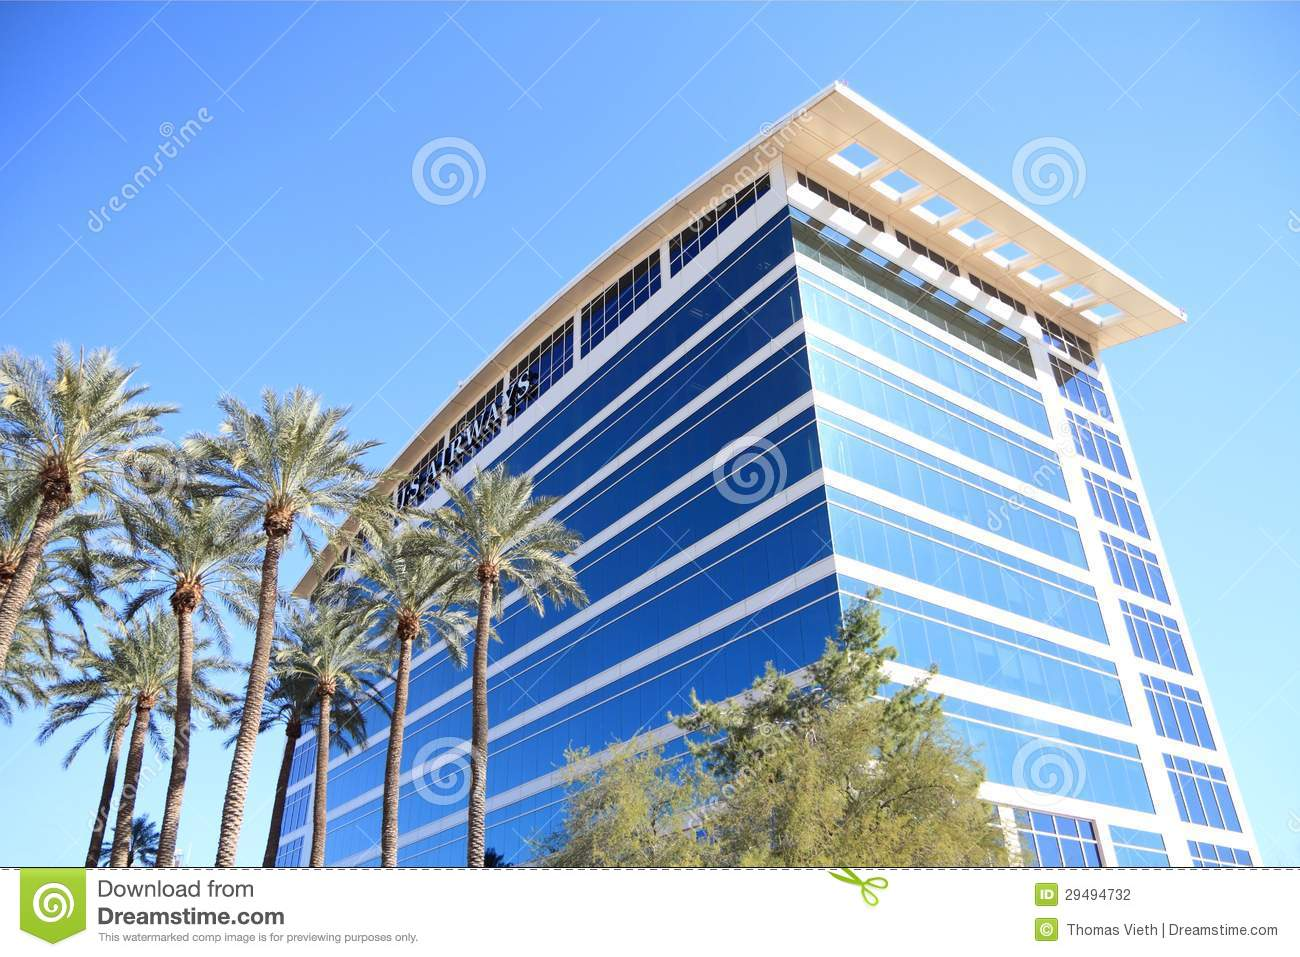 Arizona/Tempe: Office Building in Downtown Tempe